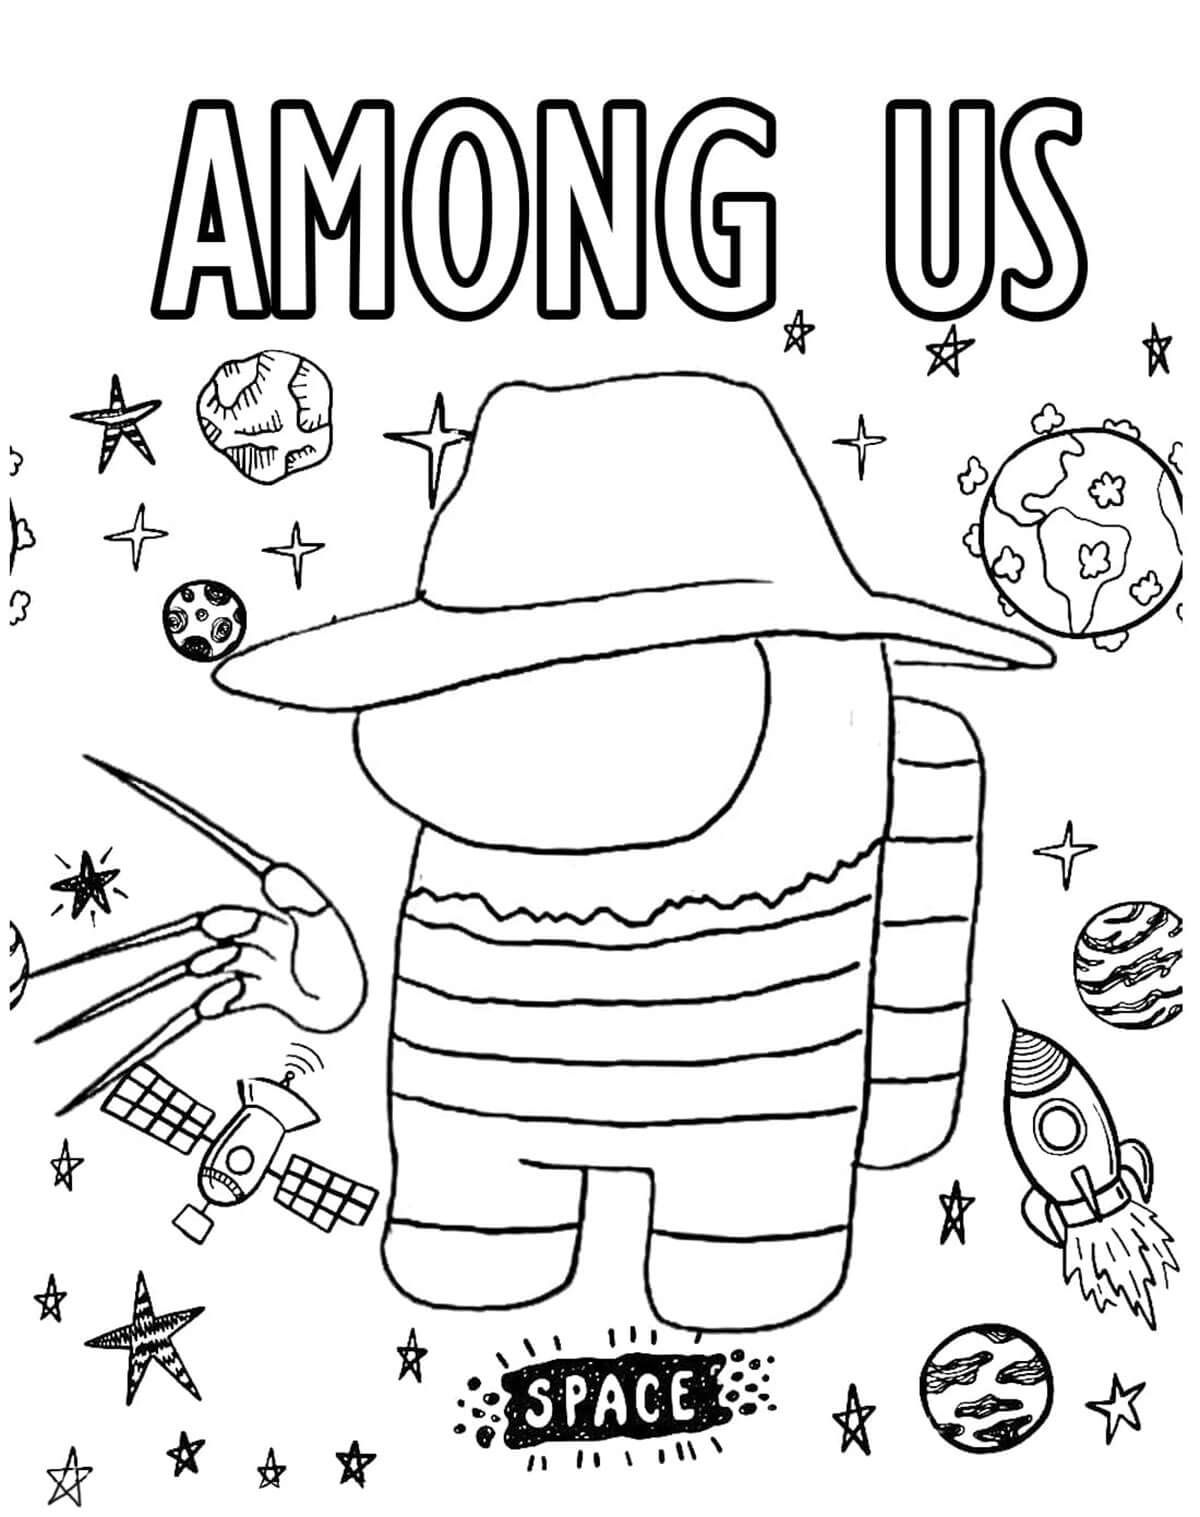 12+ Among us coloring pages pdf info